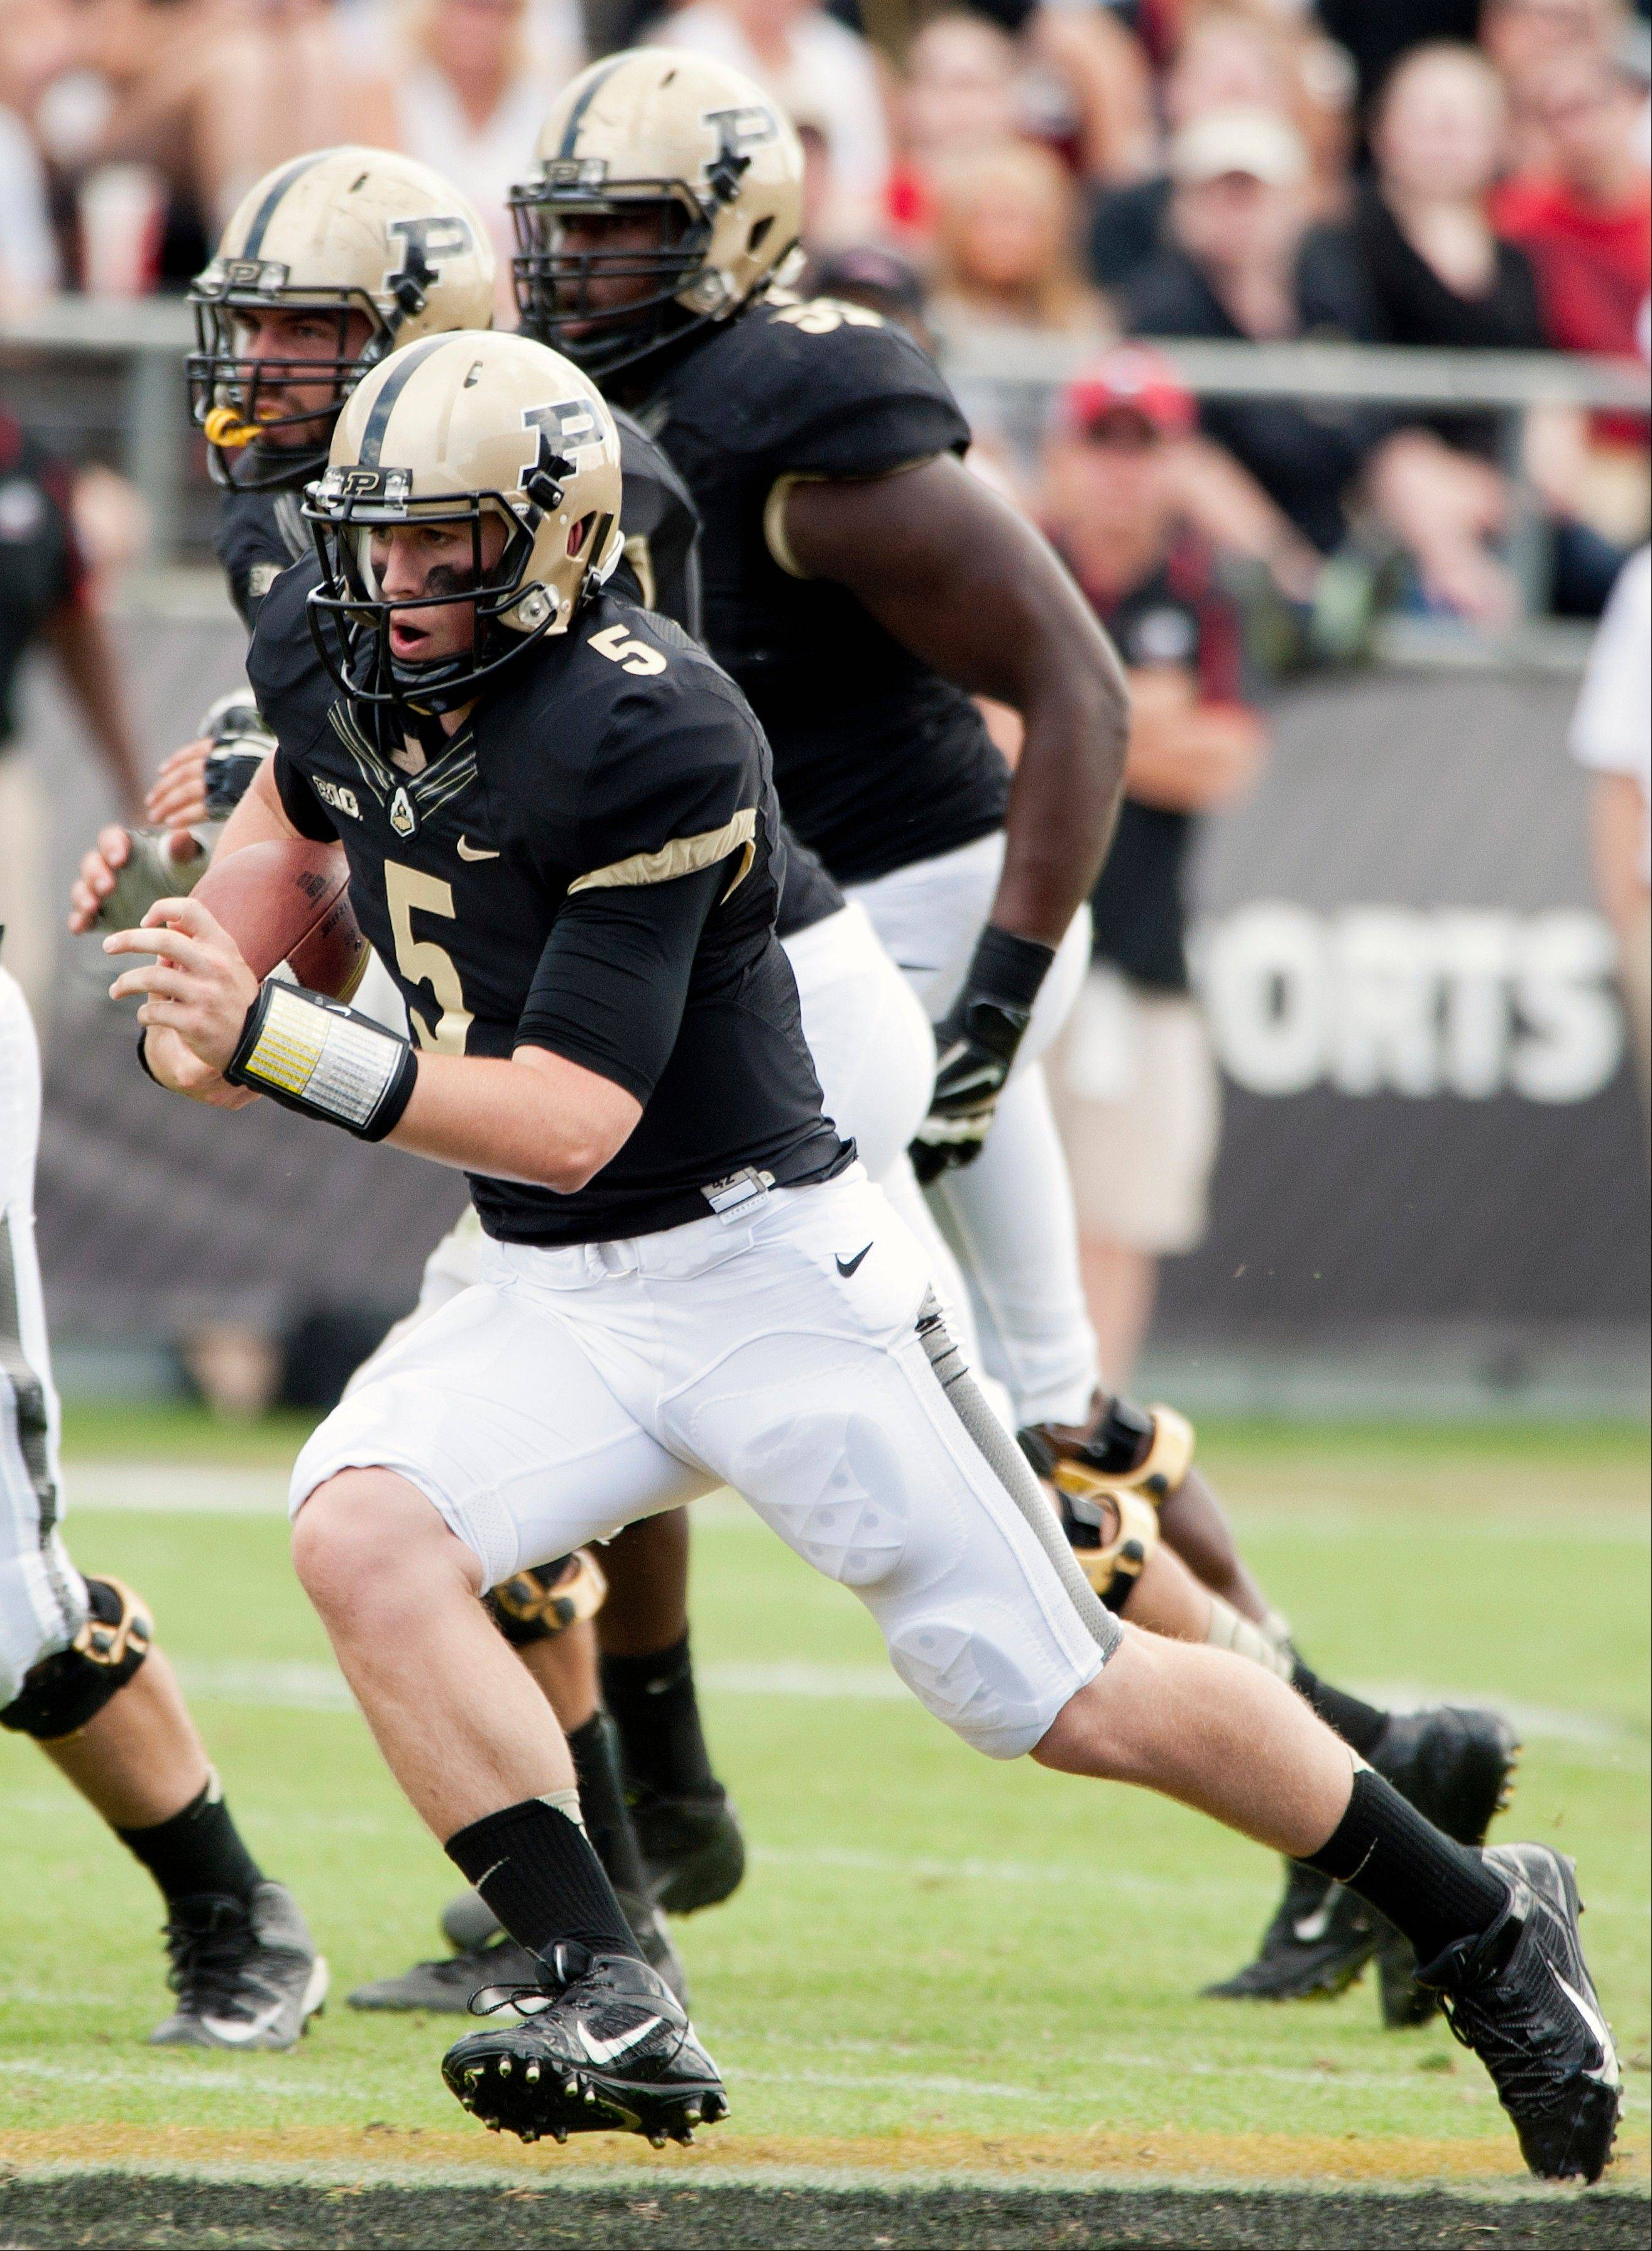 Purdue quarterback Danny Etling scrambles with the ball against Northern Illinois during the Sept. 28 game in West Lafayette, Ind.